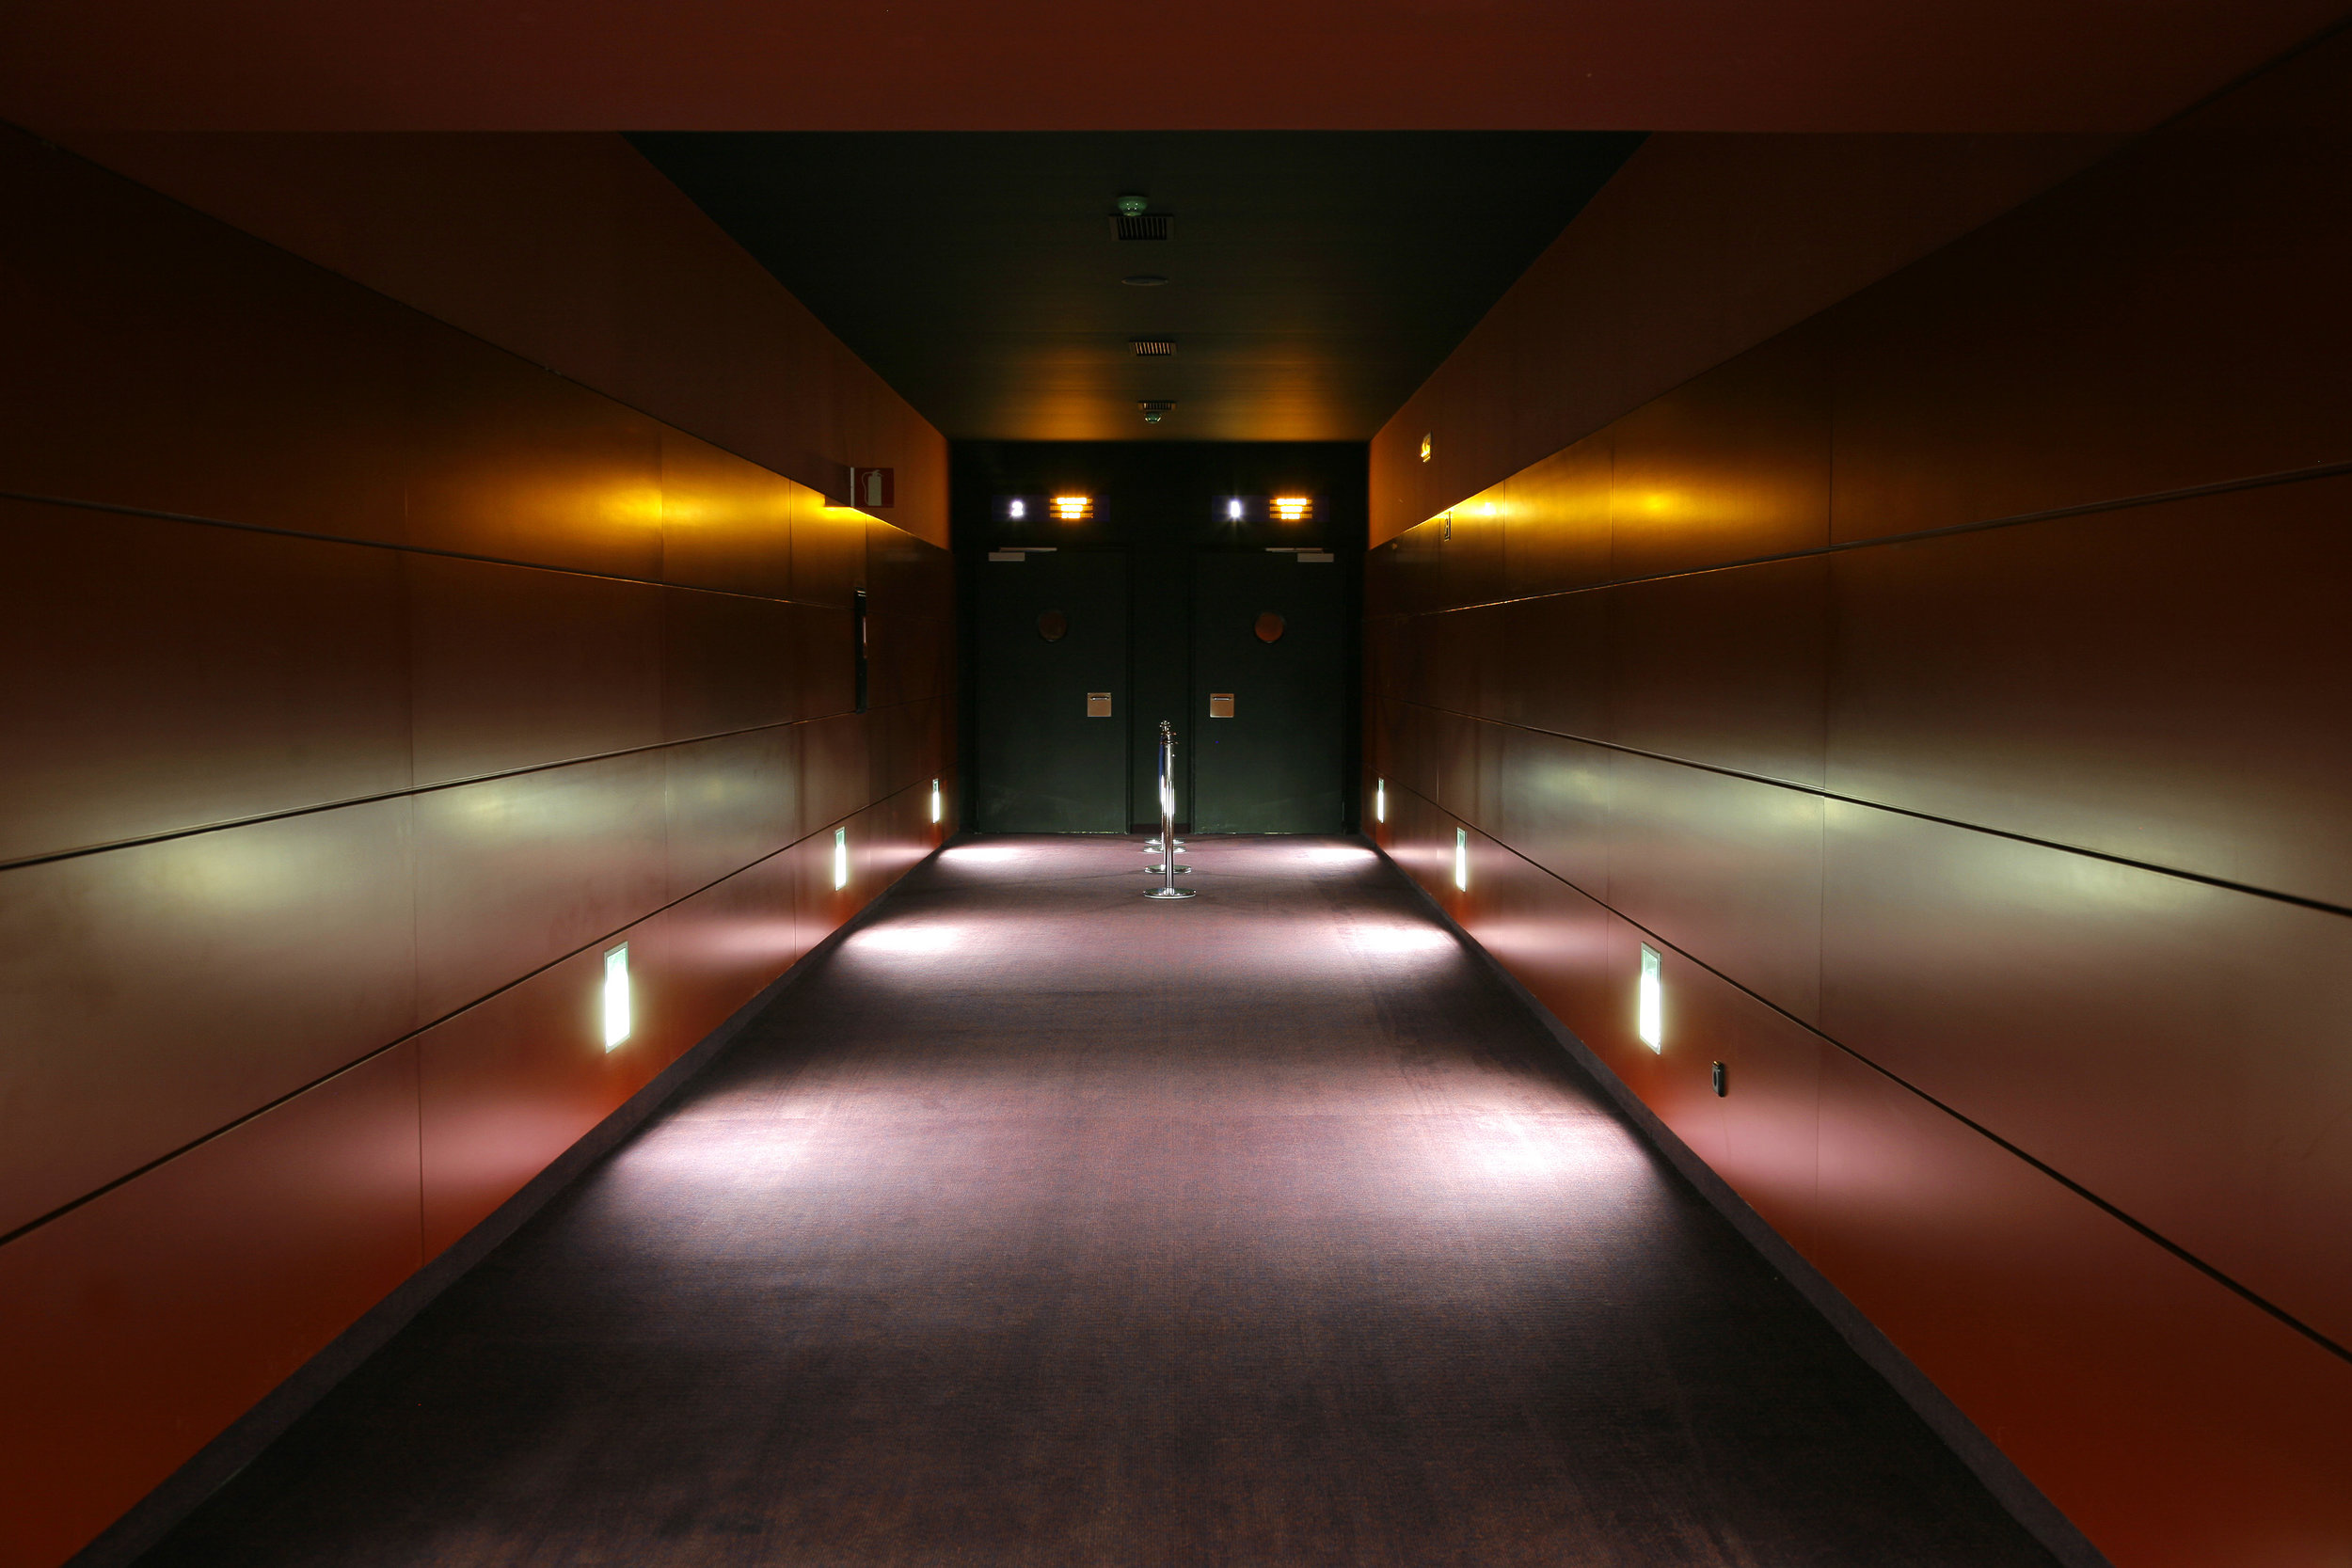 Light as a transformer - We believe in lighting design as a tool to shape space.